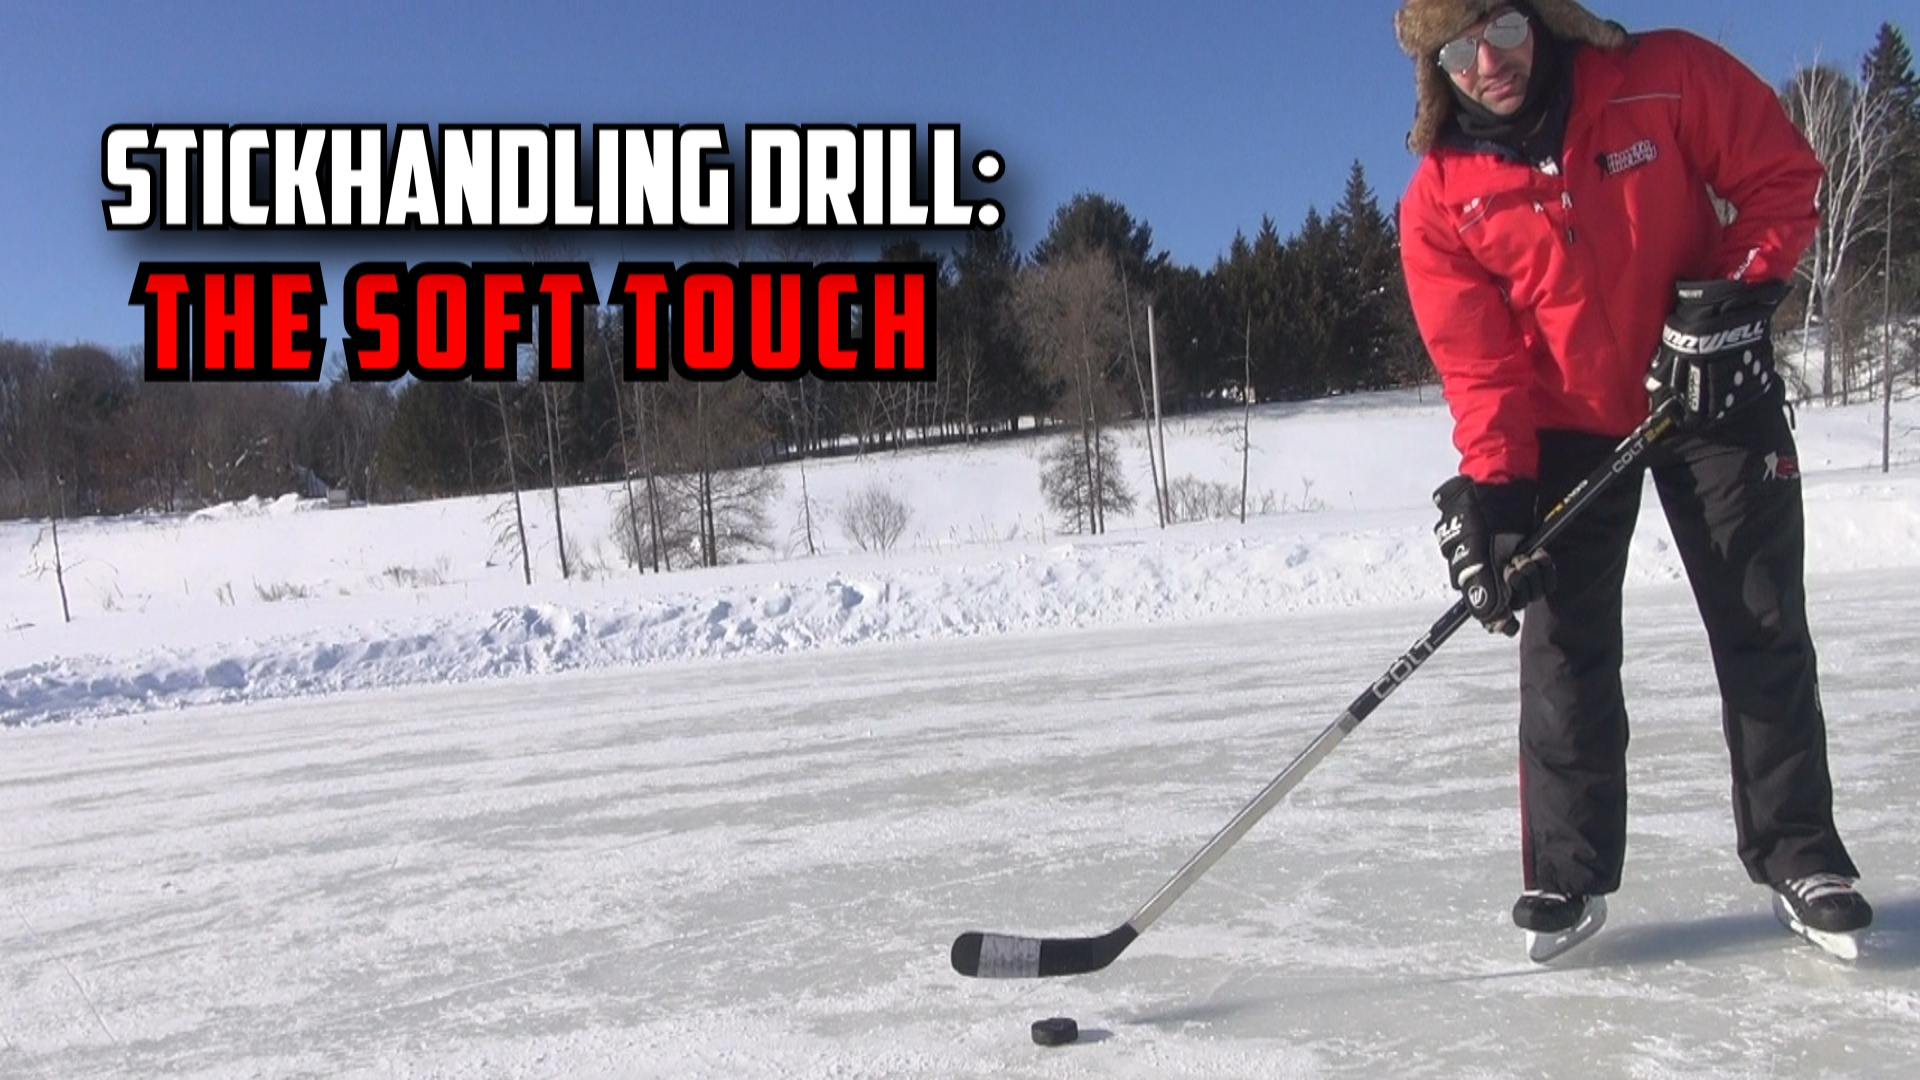 The Soft Touch Stickhandling Drill